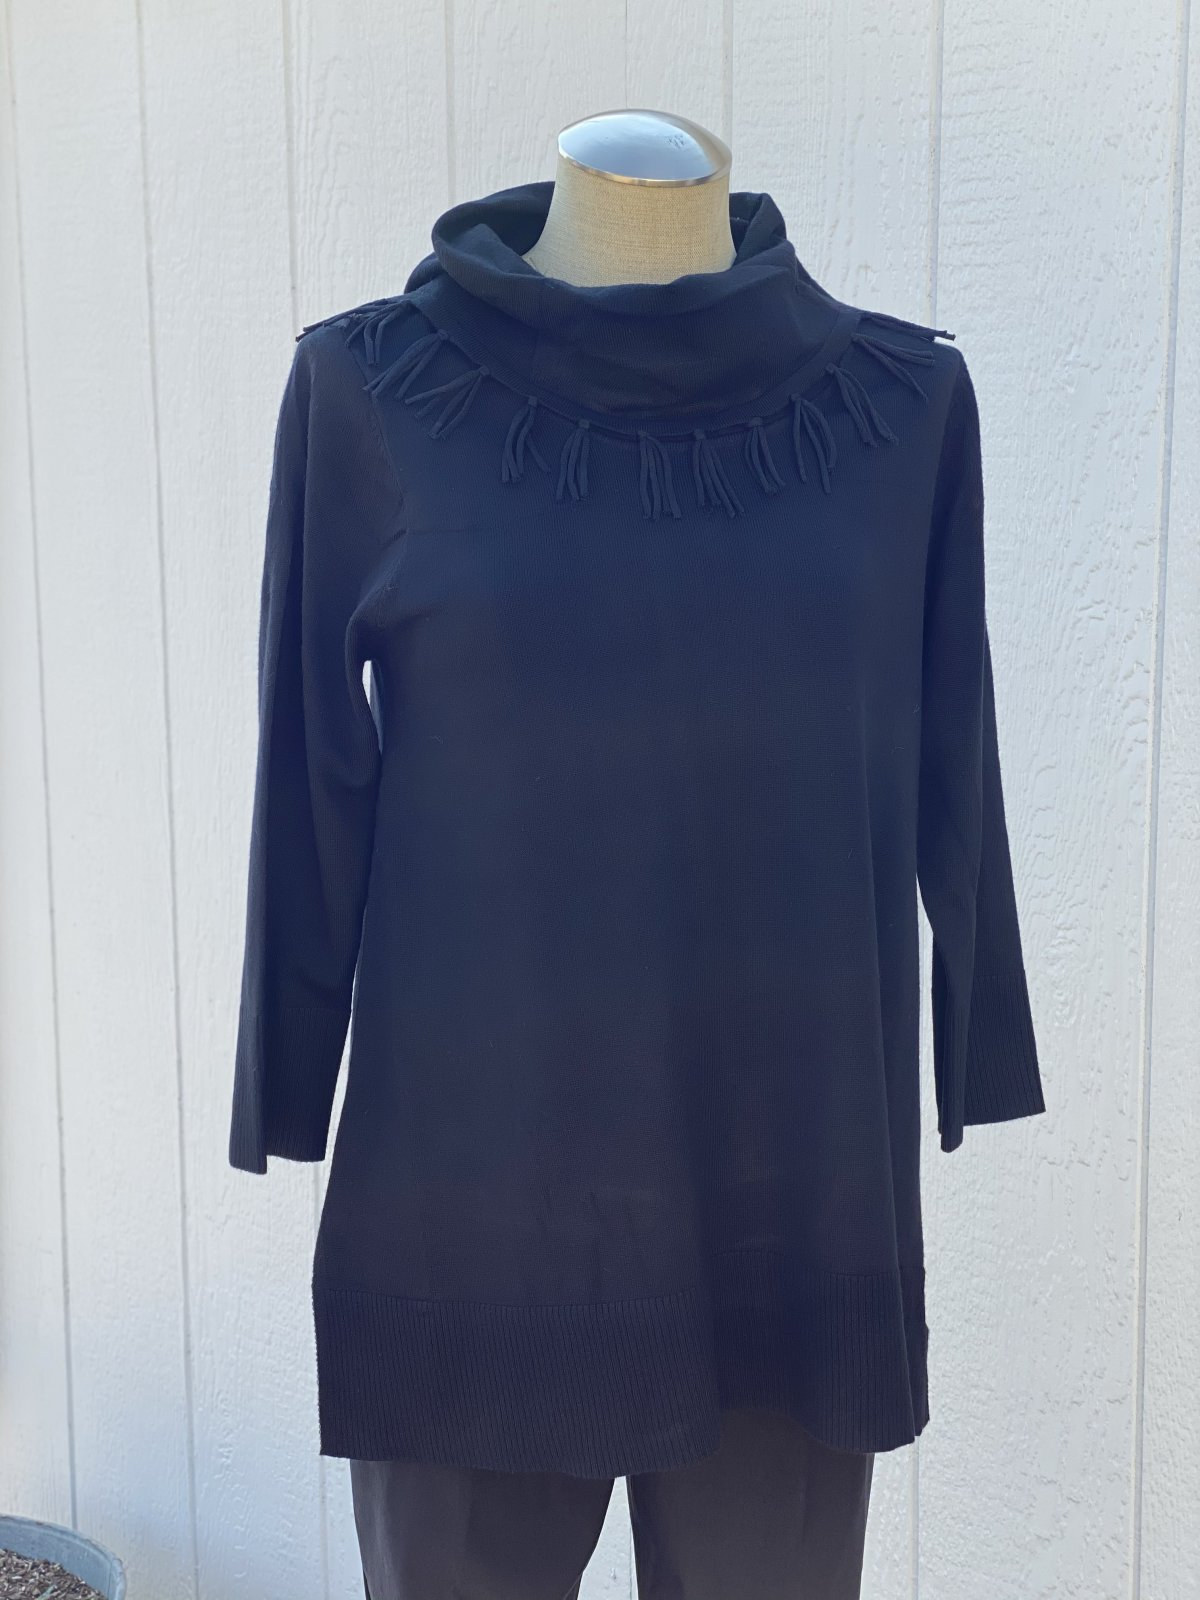 3/4 Sleeve Fringe Cowl Neck Lightweight Sweater from Multiples